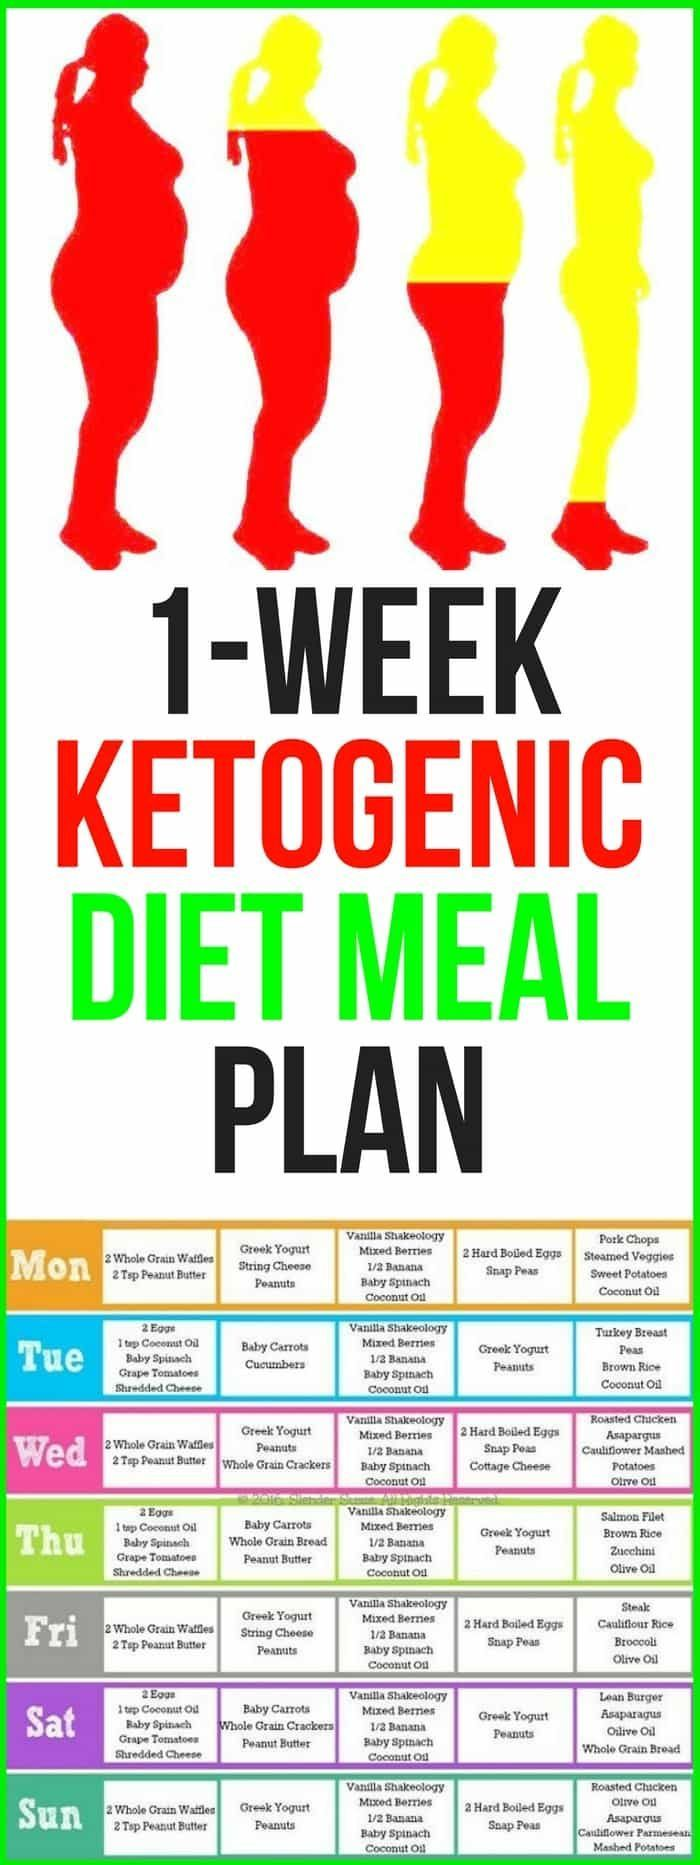 Mounting Research Suggests Nutritional Ketosis Is The